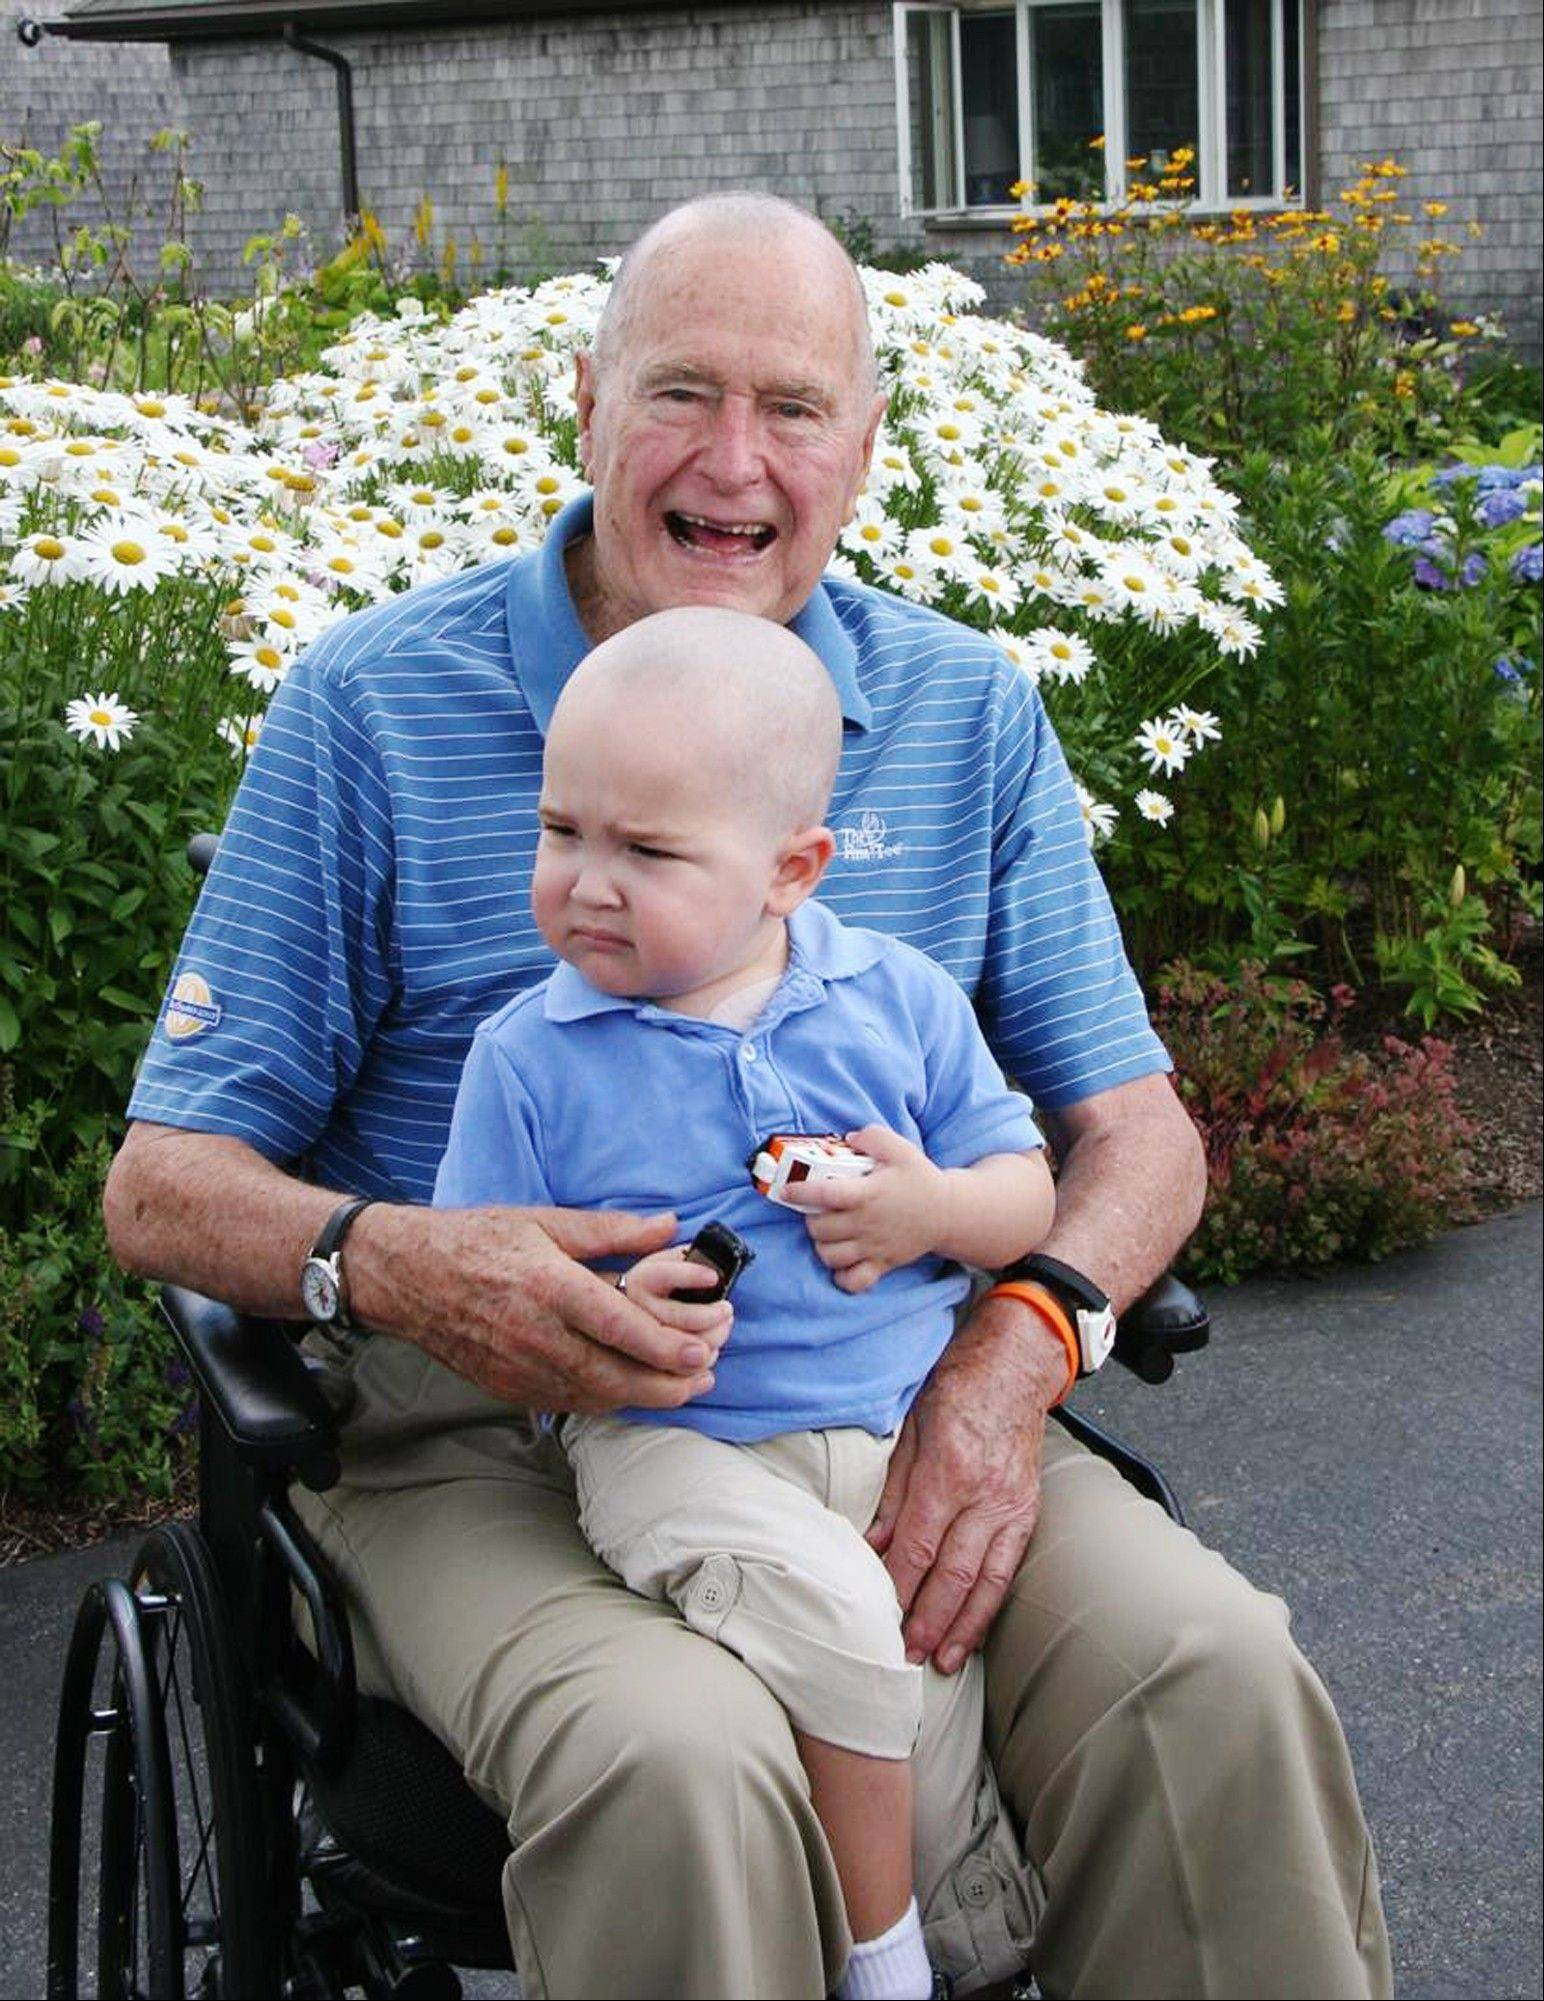 President George H.W. Bush poses with 2-year-old Patrick, last name withheld at family's request, in Kennebunkport, Maine. Bush this week joined members of his Secret Service detail in shaving his head to show solidarity for Patrick, who is the son of one of the agents. The child is undergoing treatment for leukemia and is losing his hair as a result.